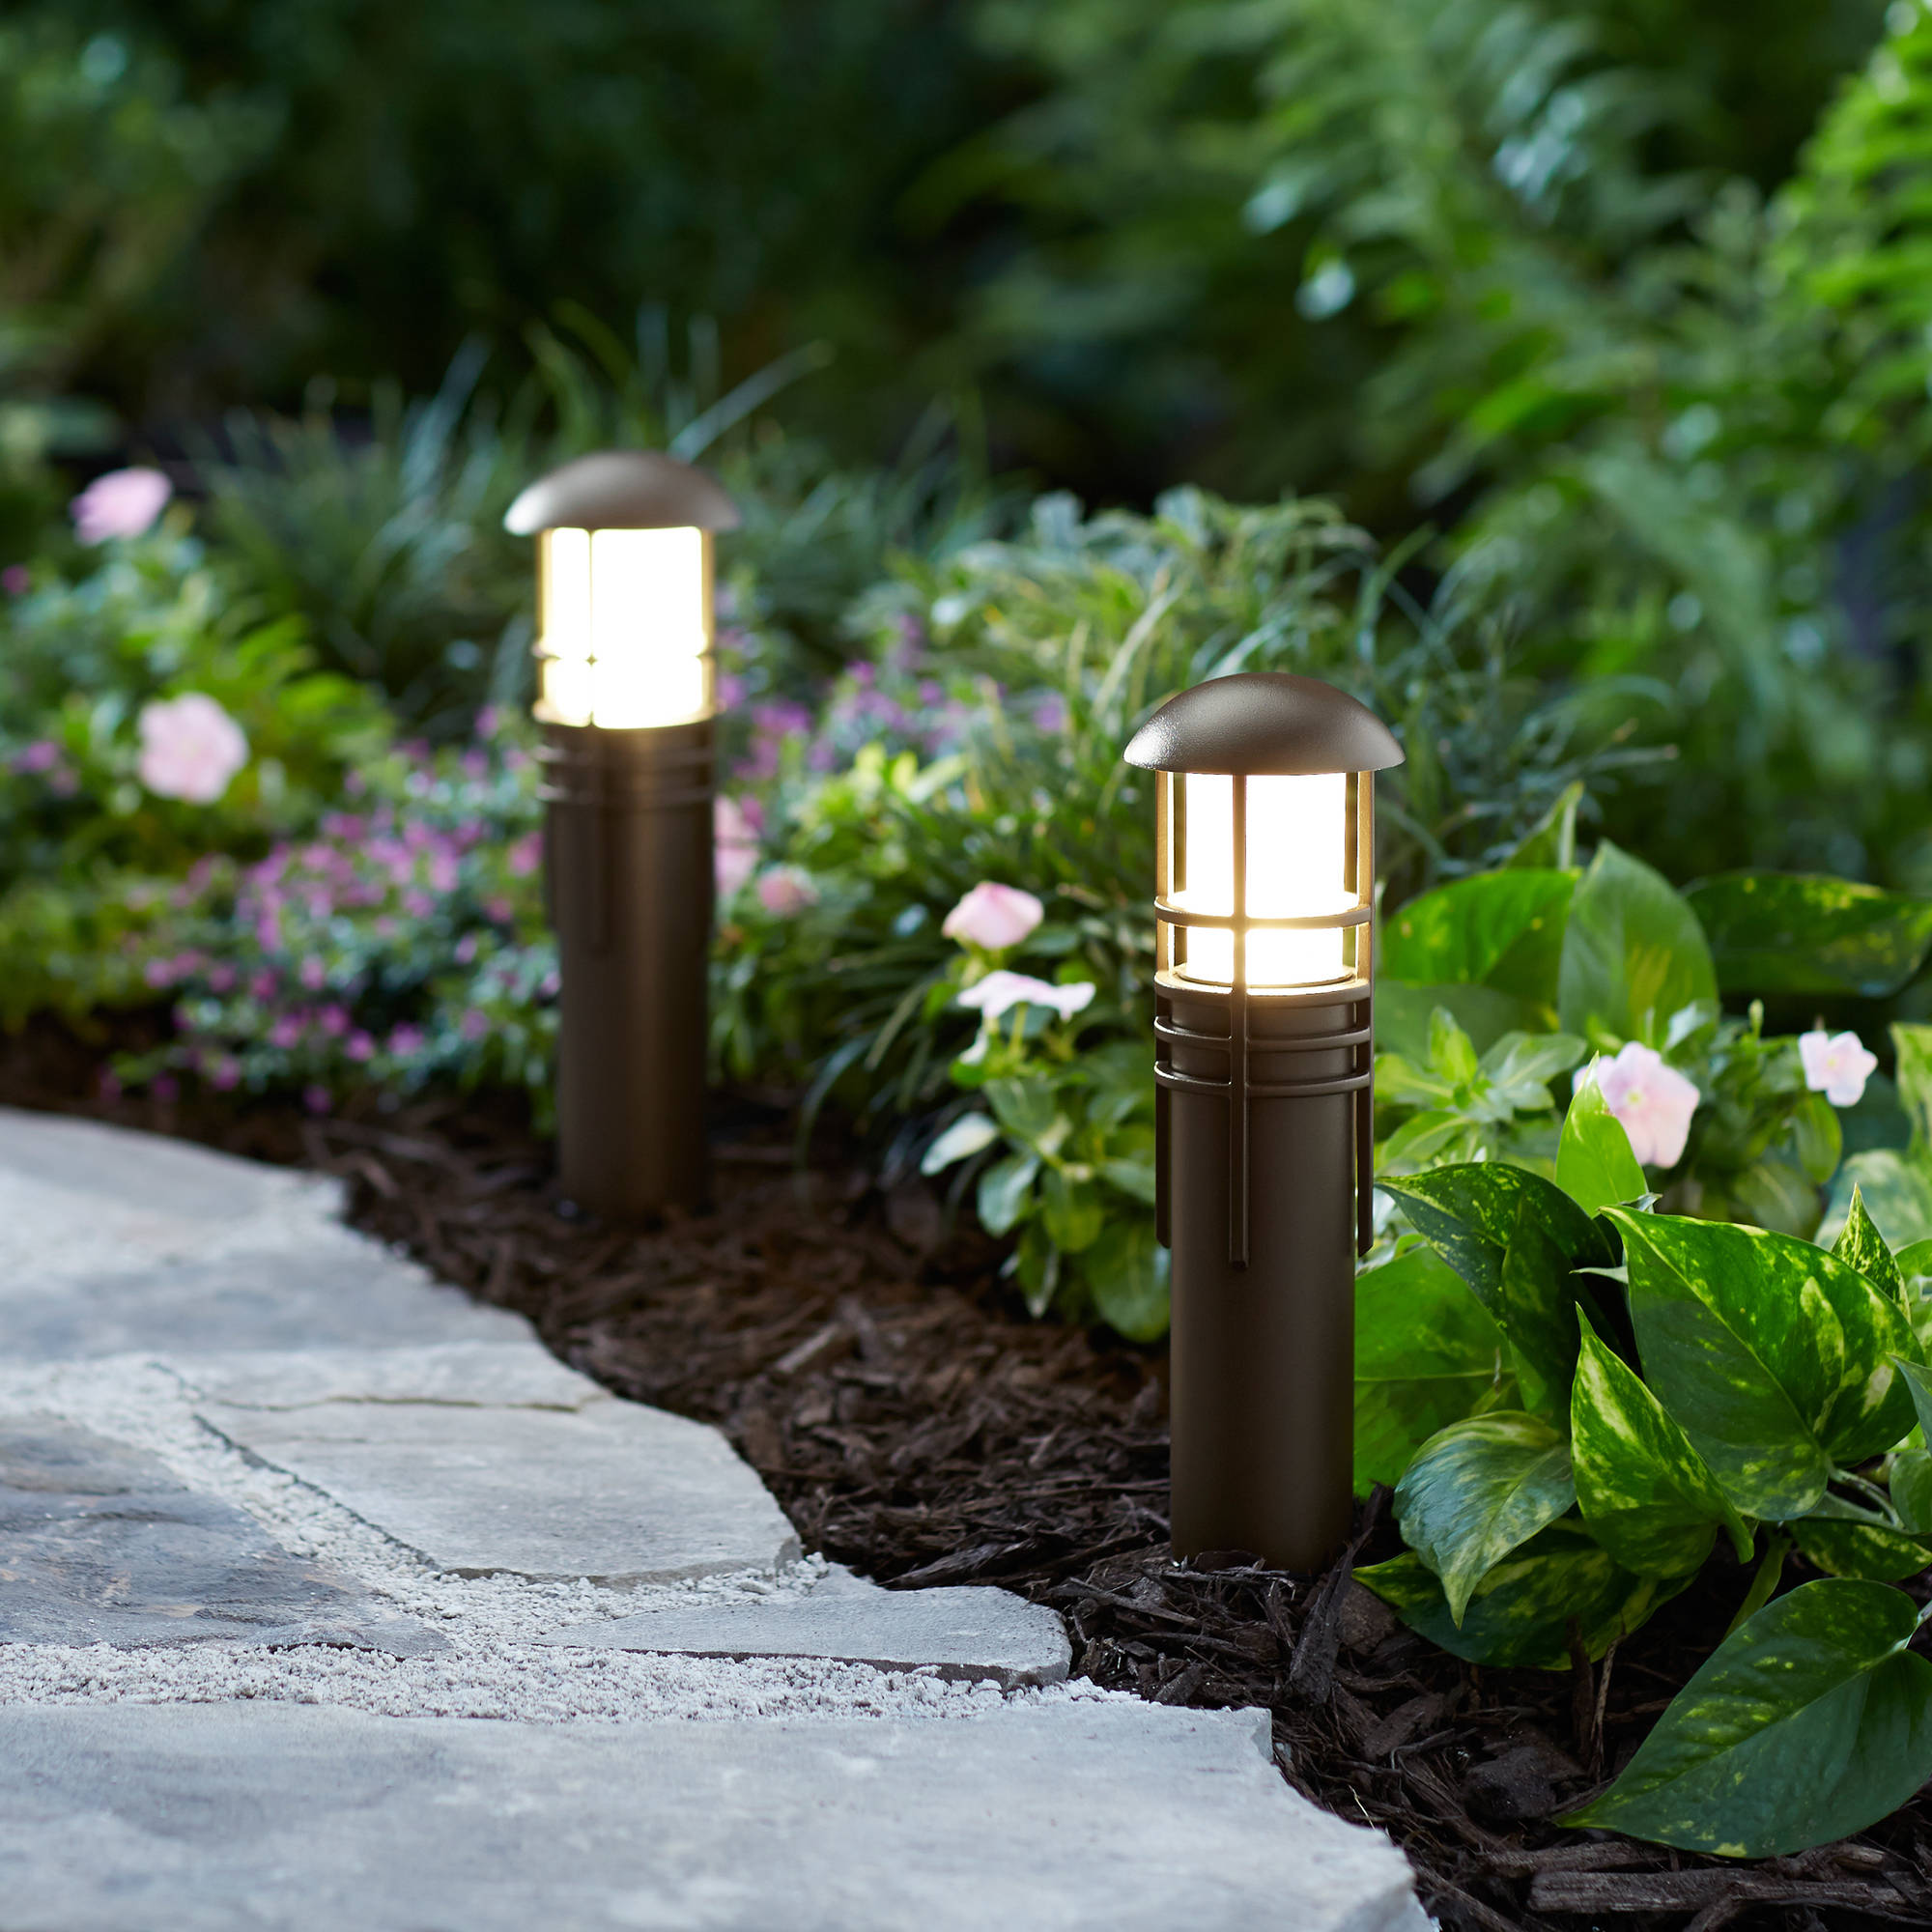 Better Homes & Gardens Prentiss Outdoor QuickFIT LED Pathway Light